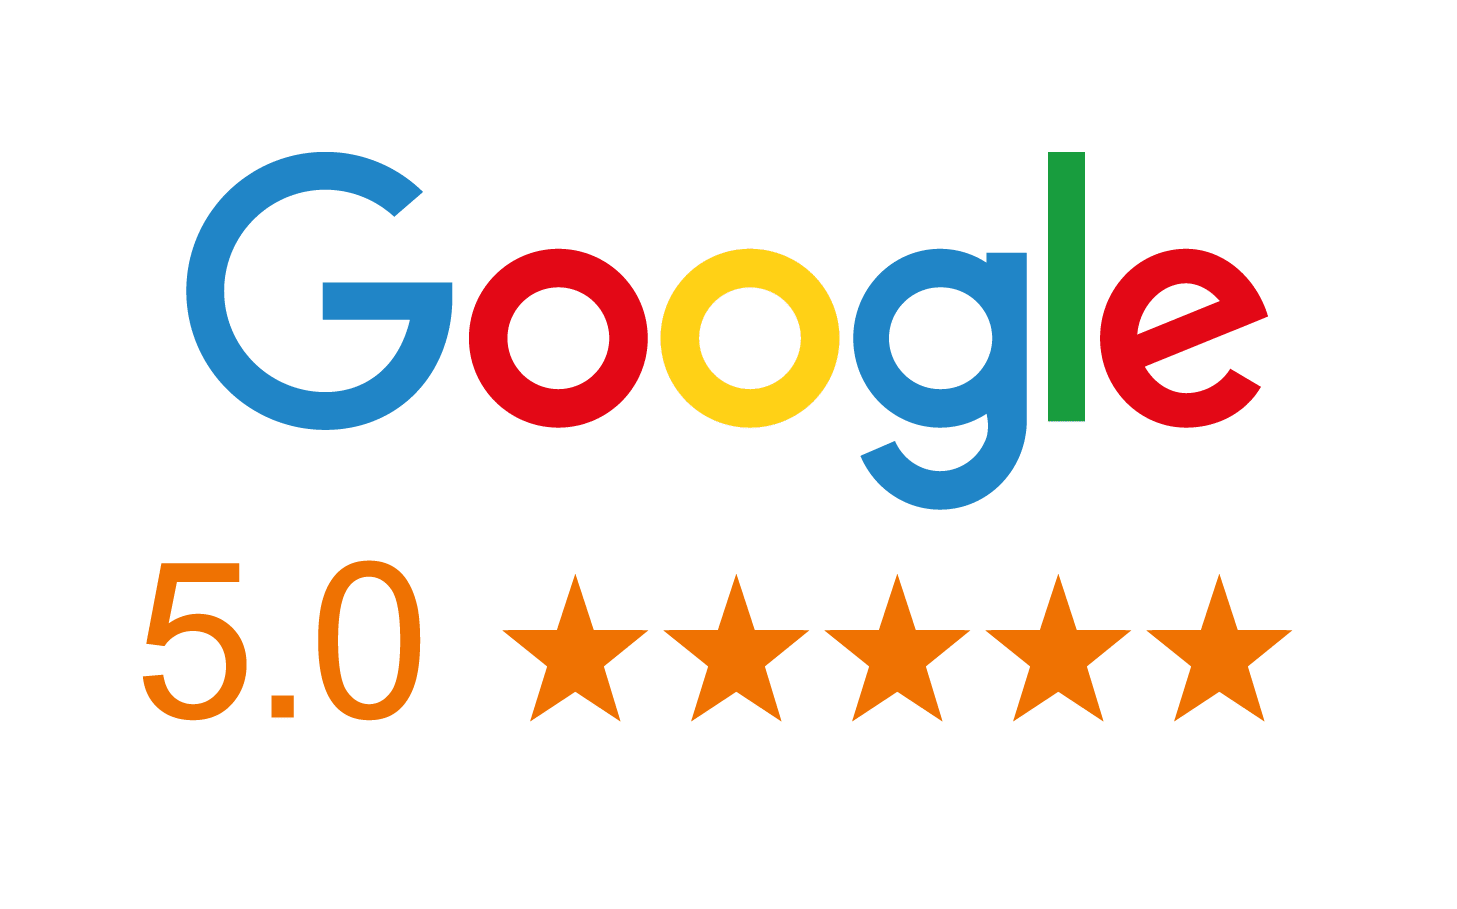 Google 5 Star rating image